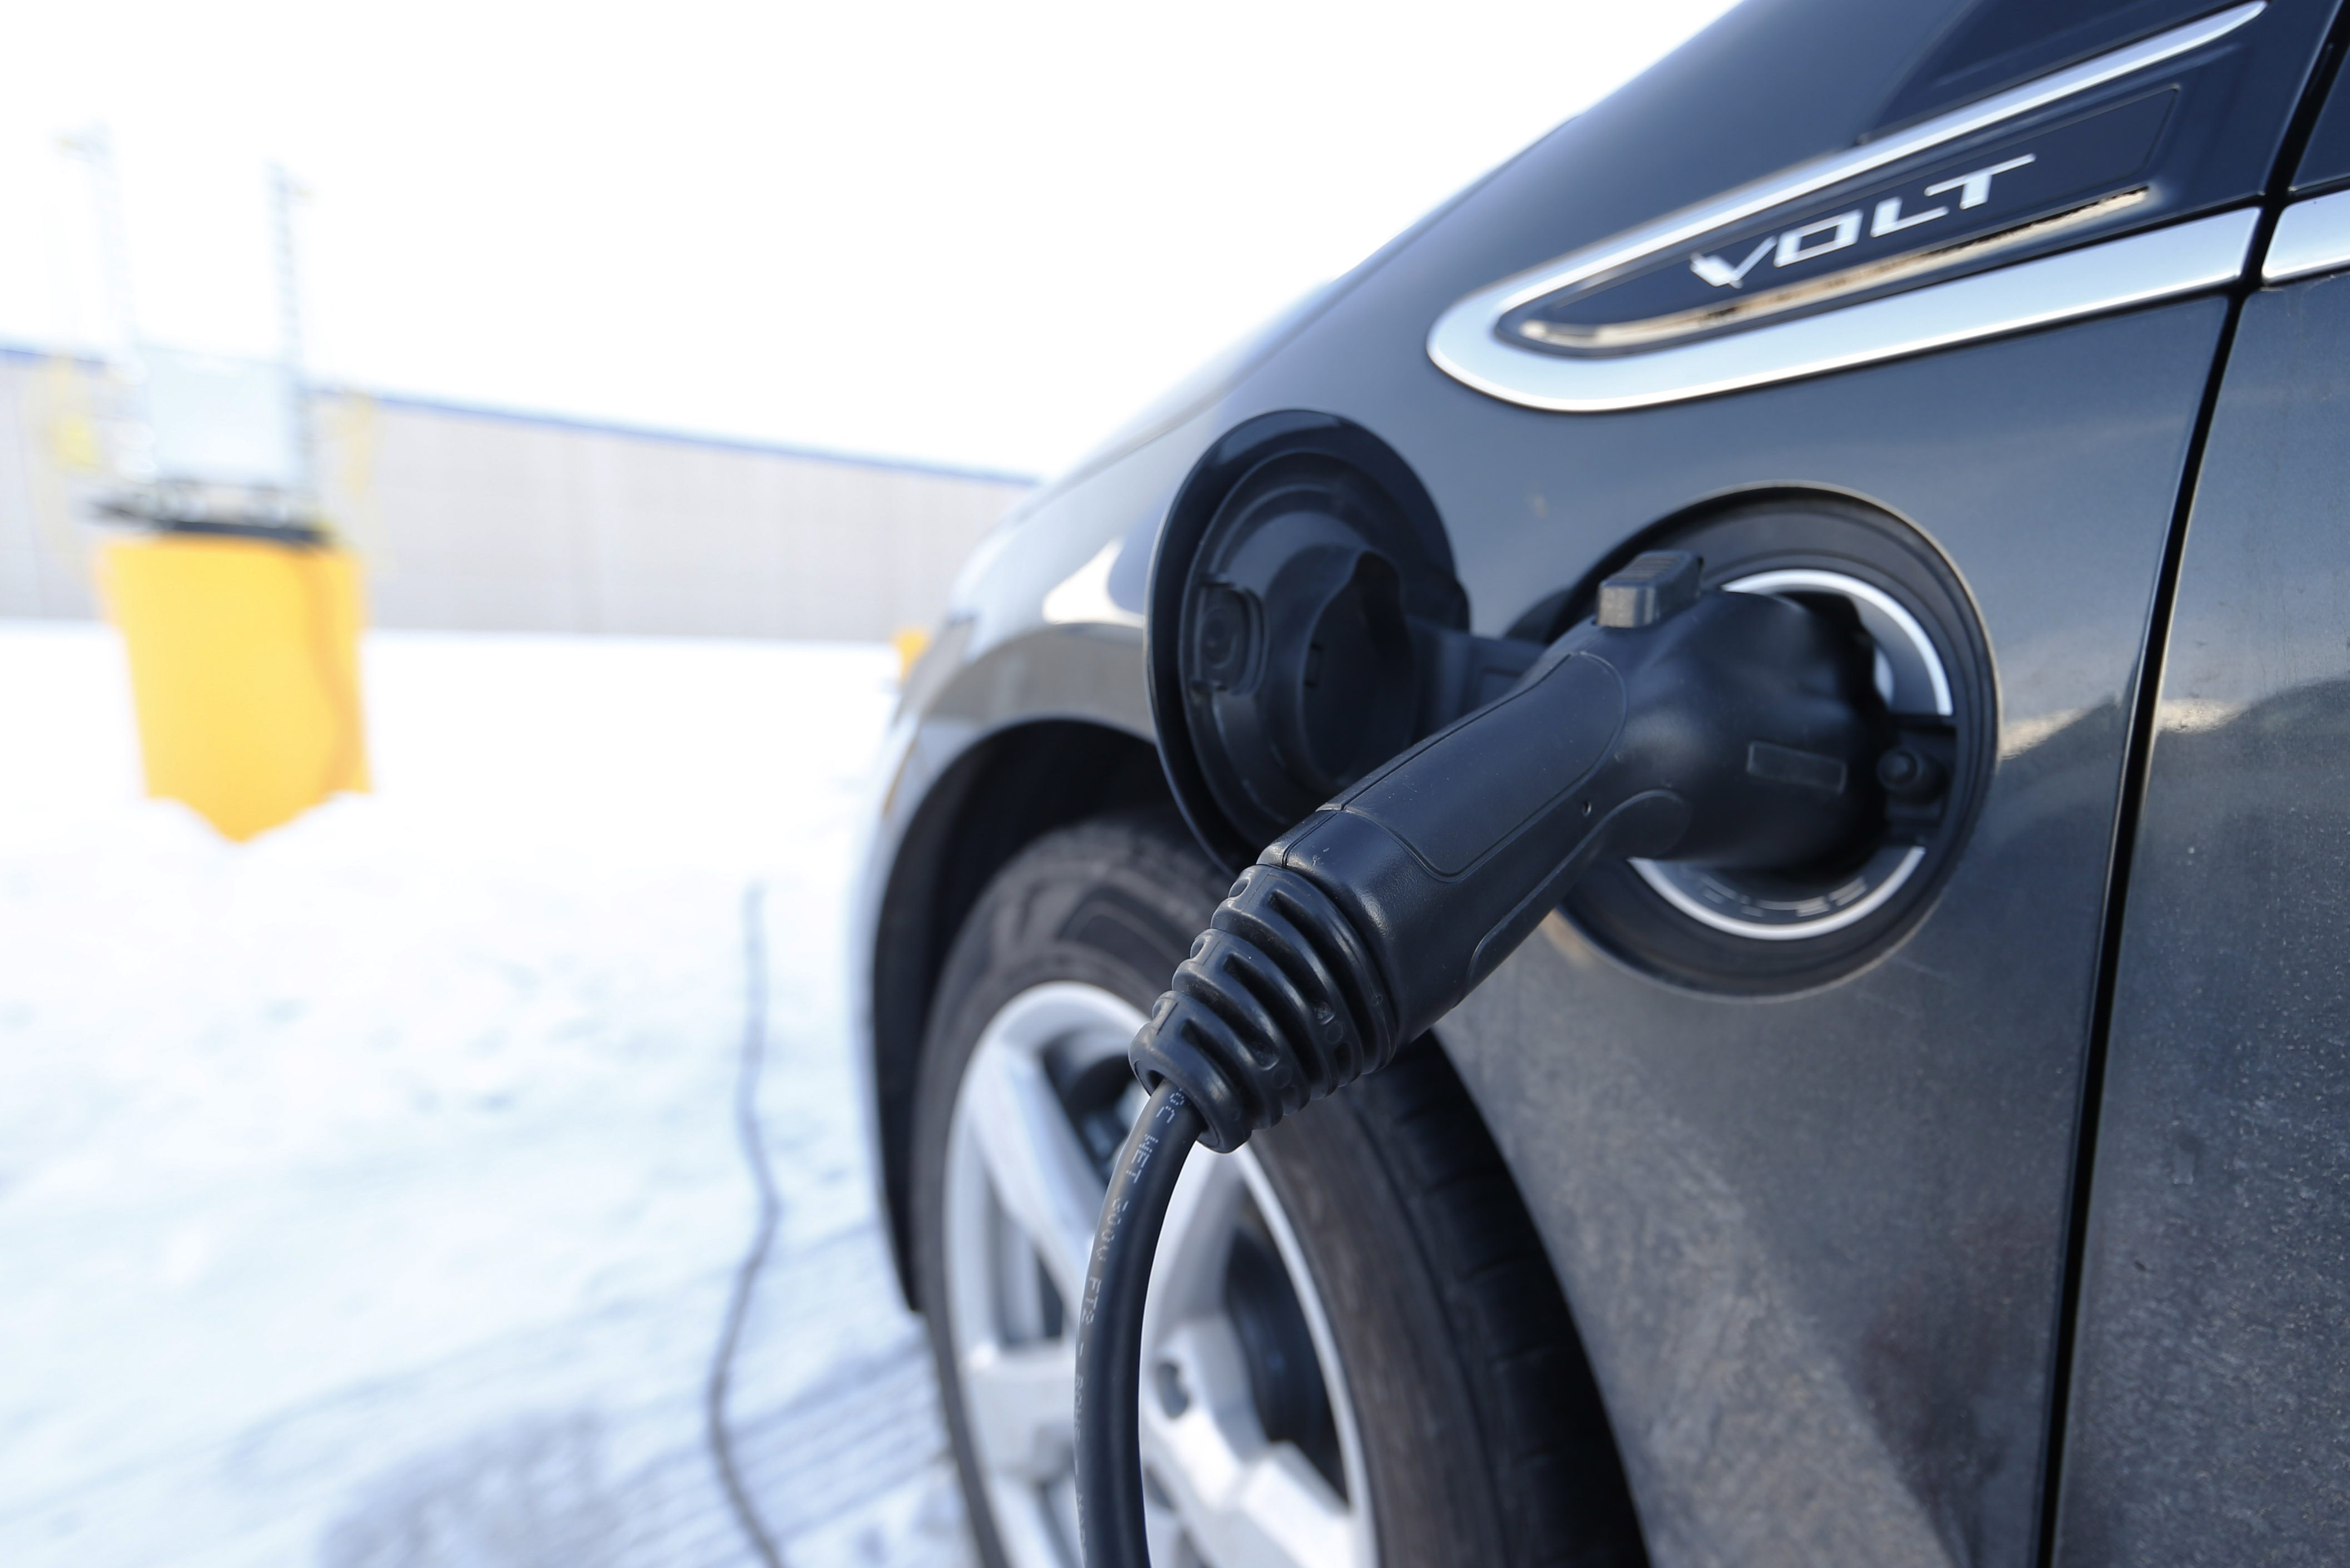 Chevrolet Volt charges at station